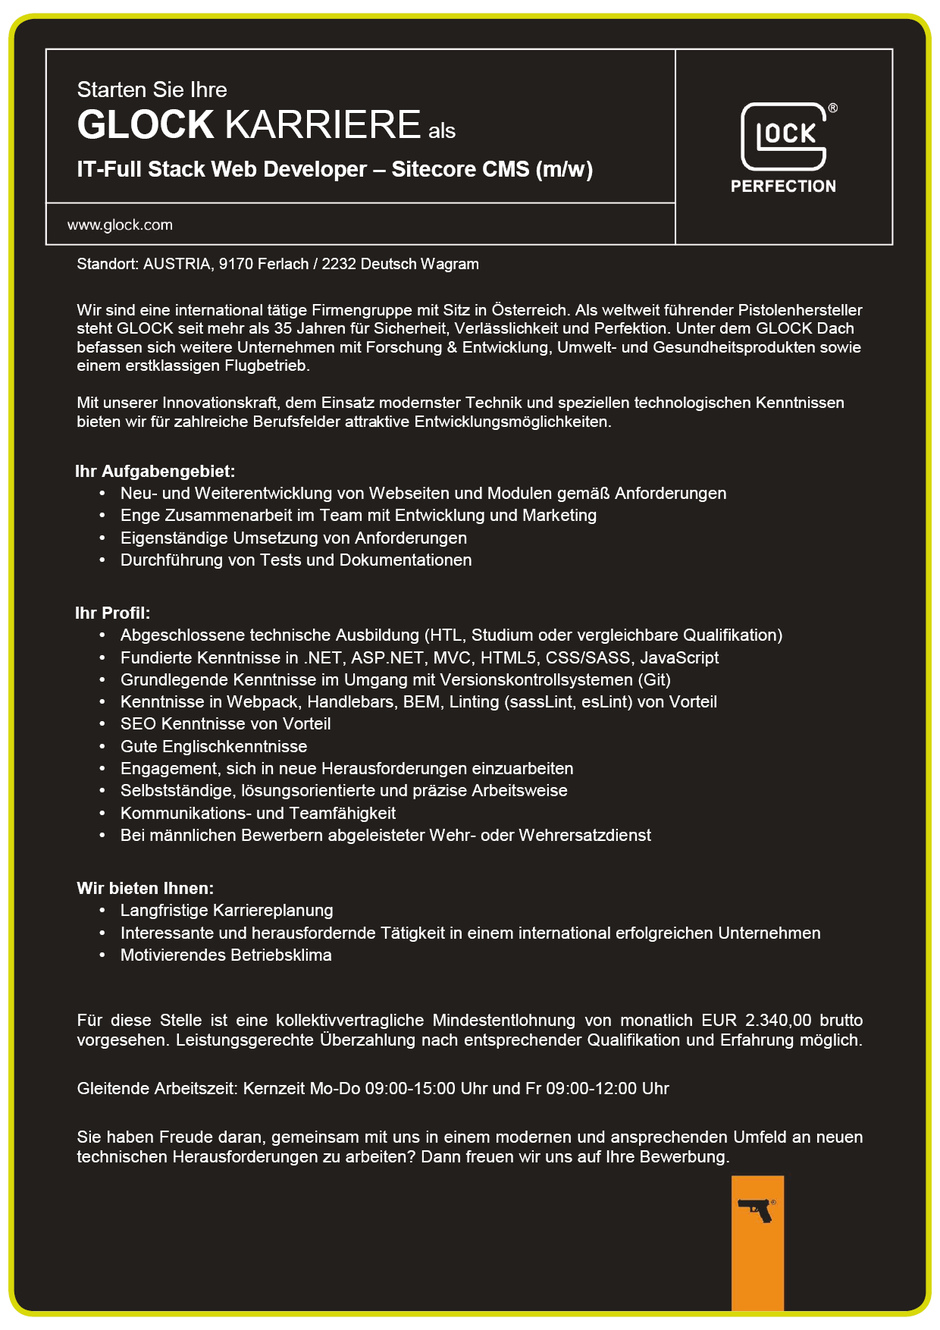 Software Developer Jobs - IT Full Stack Web Developer - Glock GesmbH - Ferlach - Kärnten